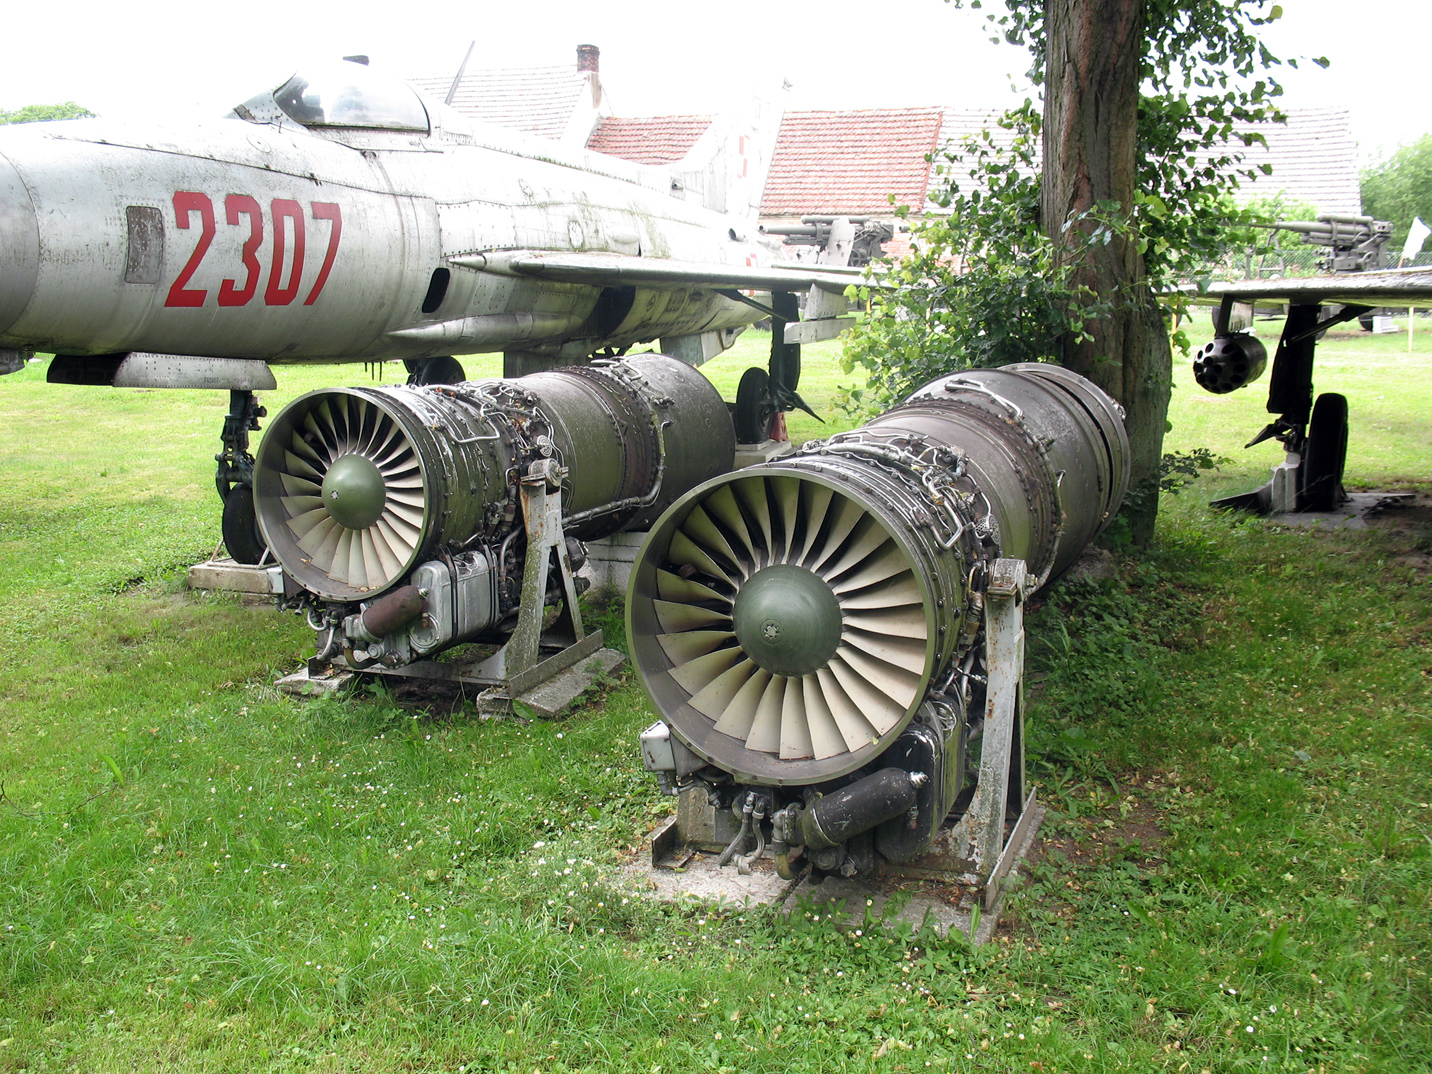 jet engines The jet engine sir frank whittle's jet engine transformed travel the jet engine has allowed millions of people now to do something that was barely thinkable just 70 years ago – crossing the atlantic at speed.